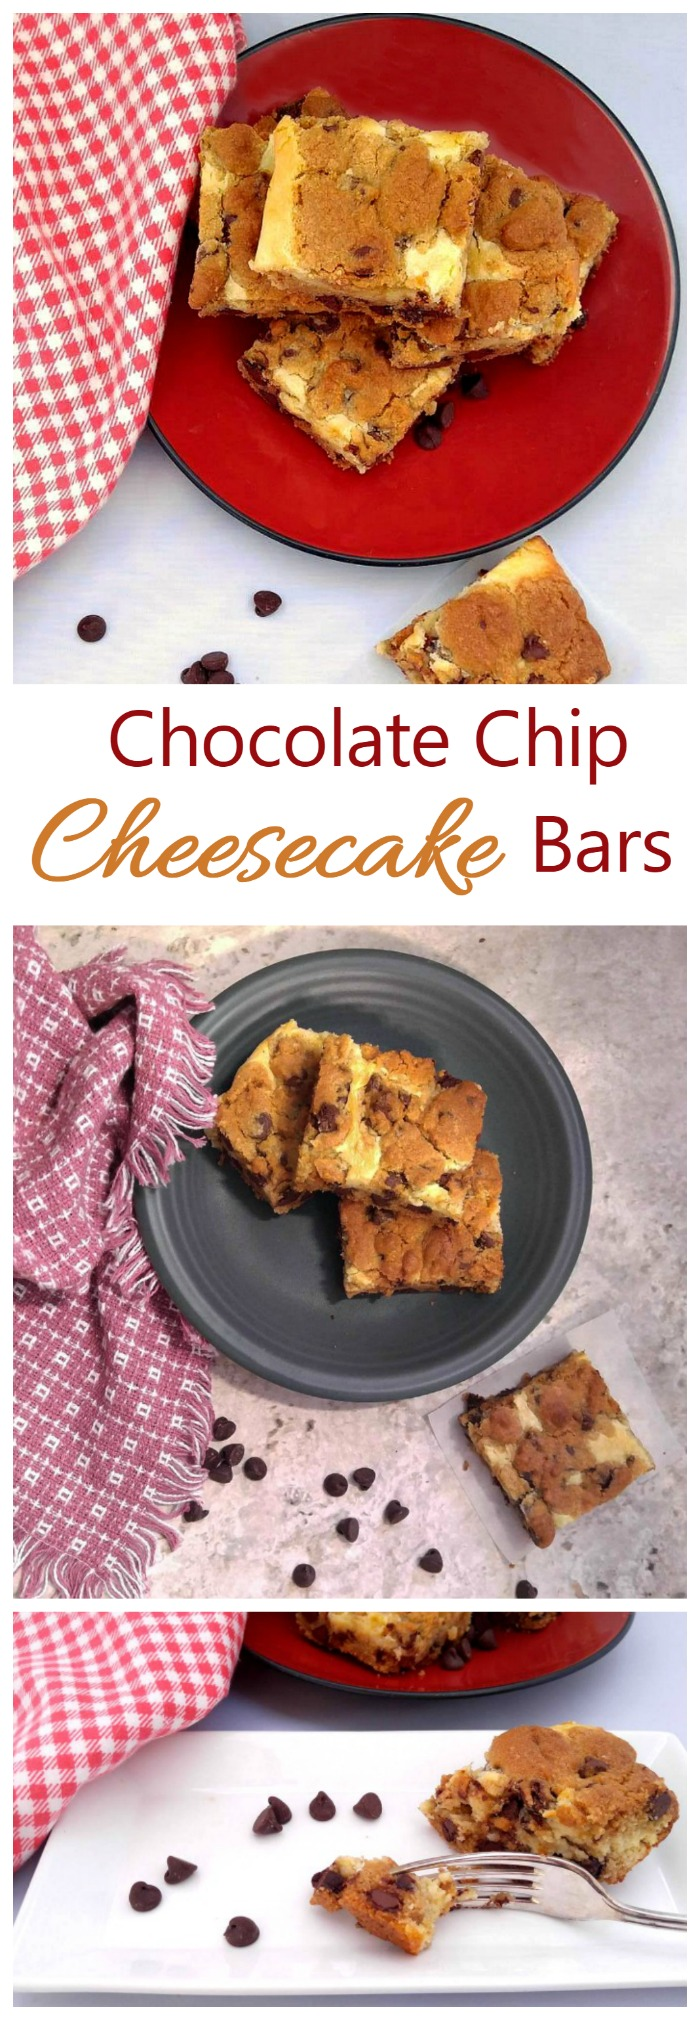 These Chocolate Chip Cheesecake Bars are a cross between a cheesecake and cookies and have the most amazing texture. They are hands down my favorite dessert so far.